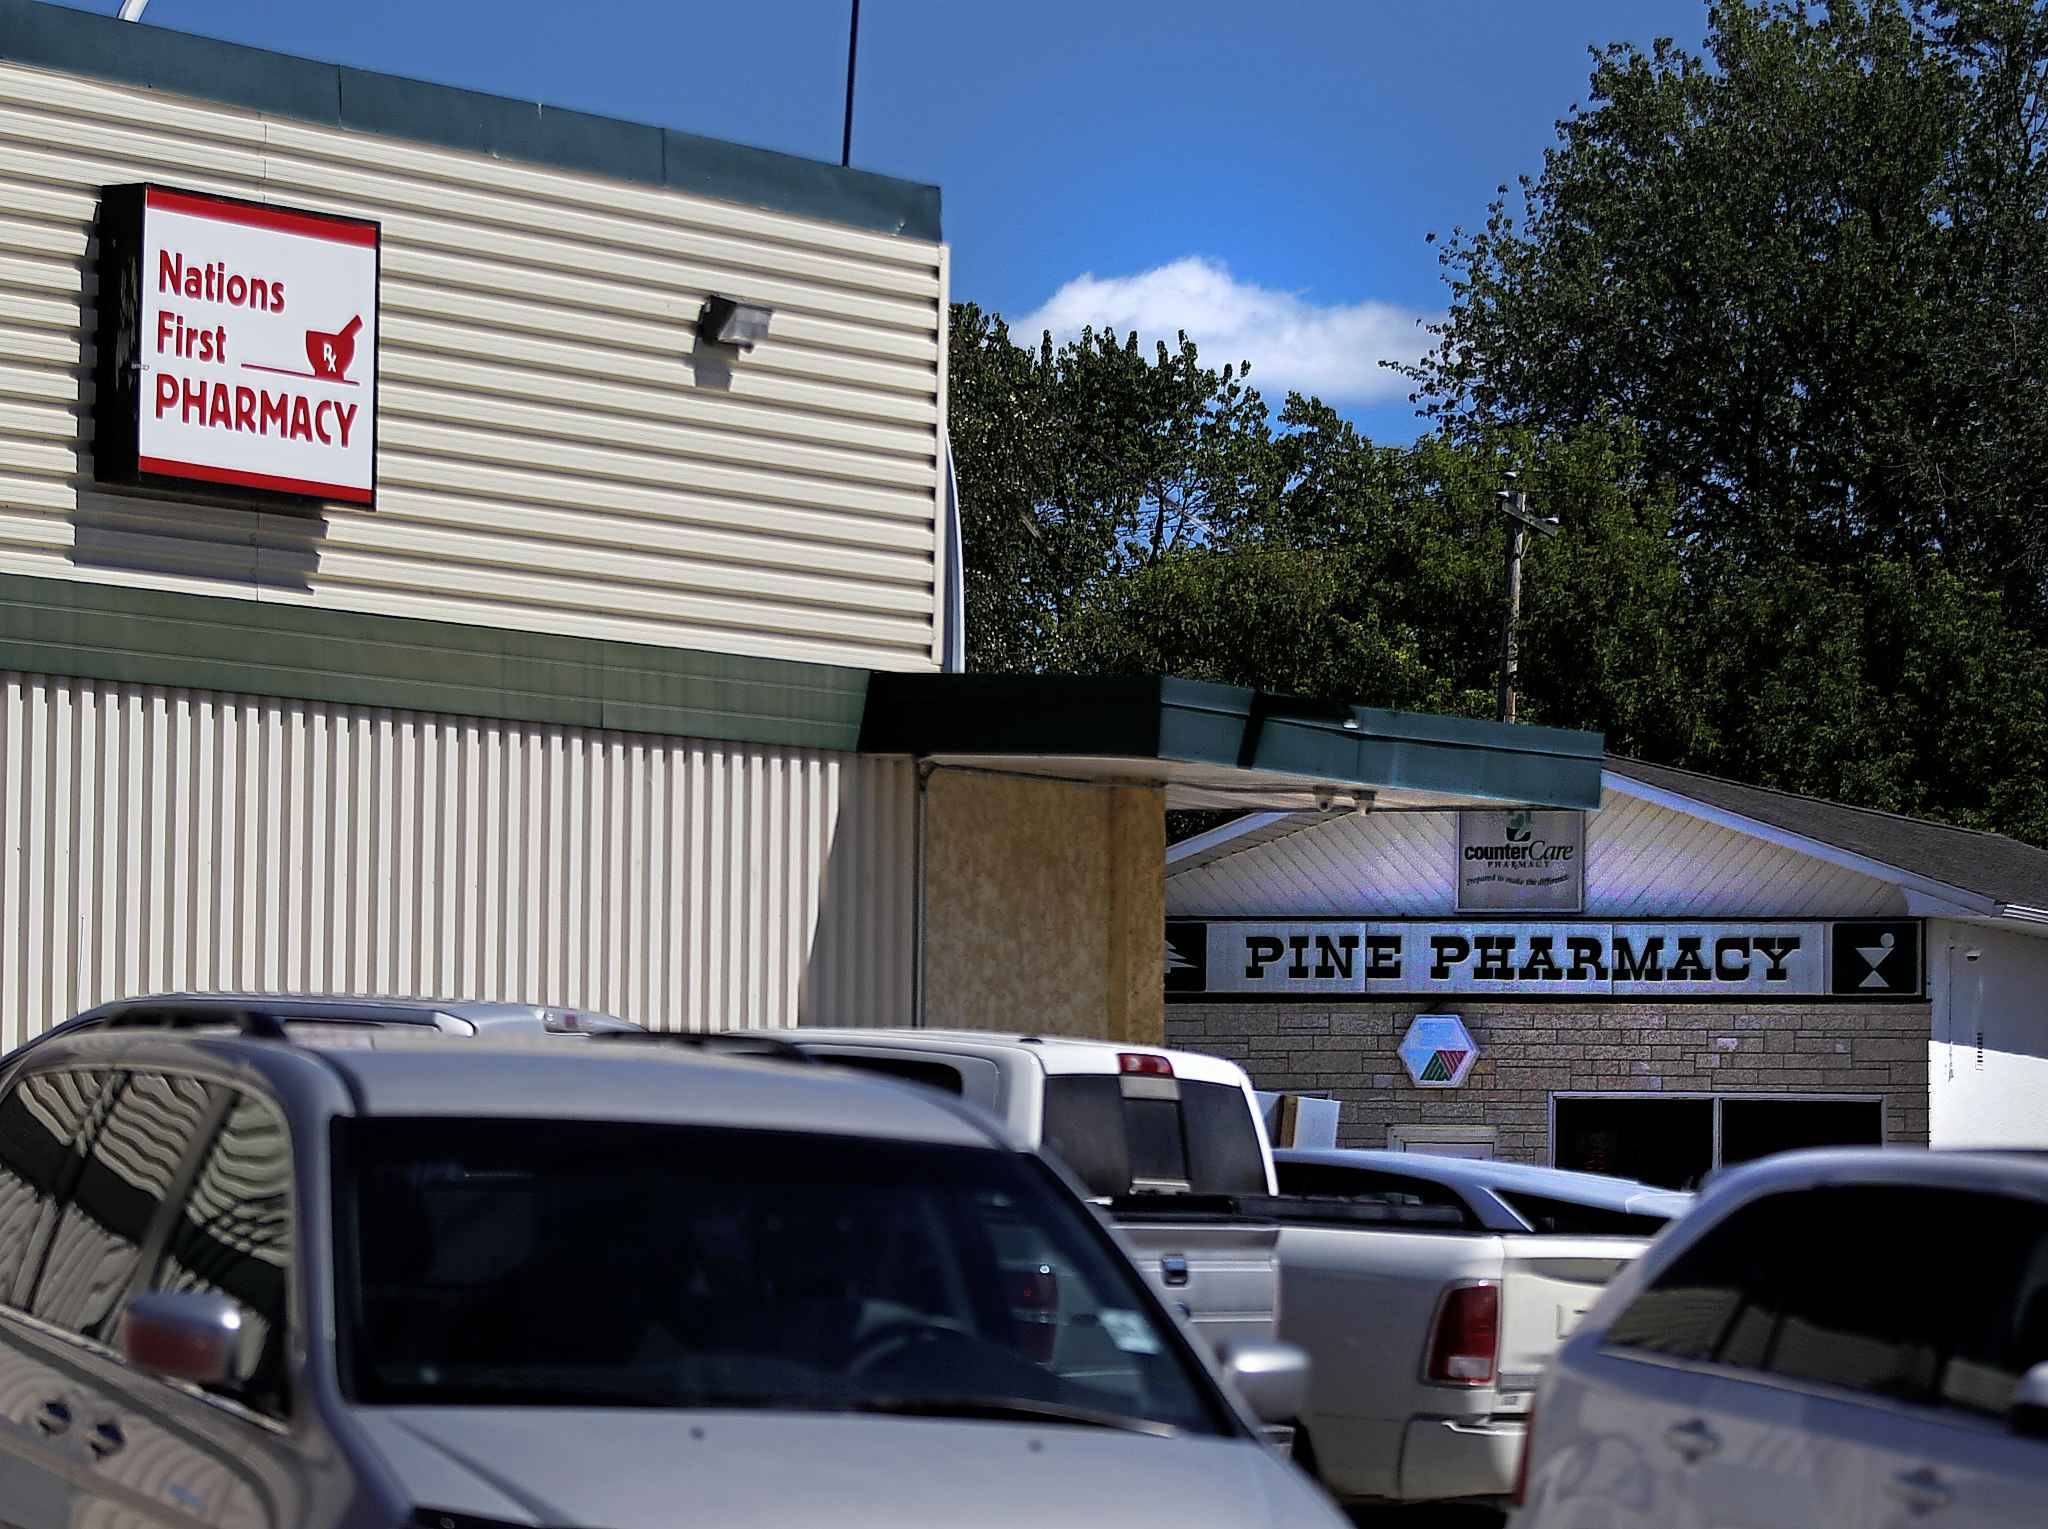 Residents question why the town has so many pharmacies. (Phil Hossack / Winnipeg Free Press)